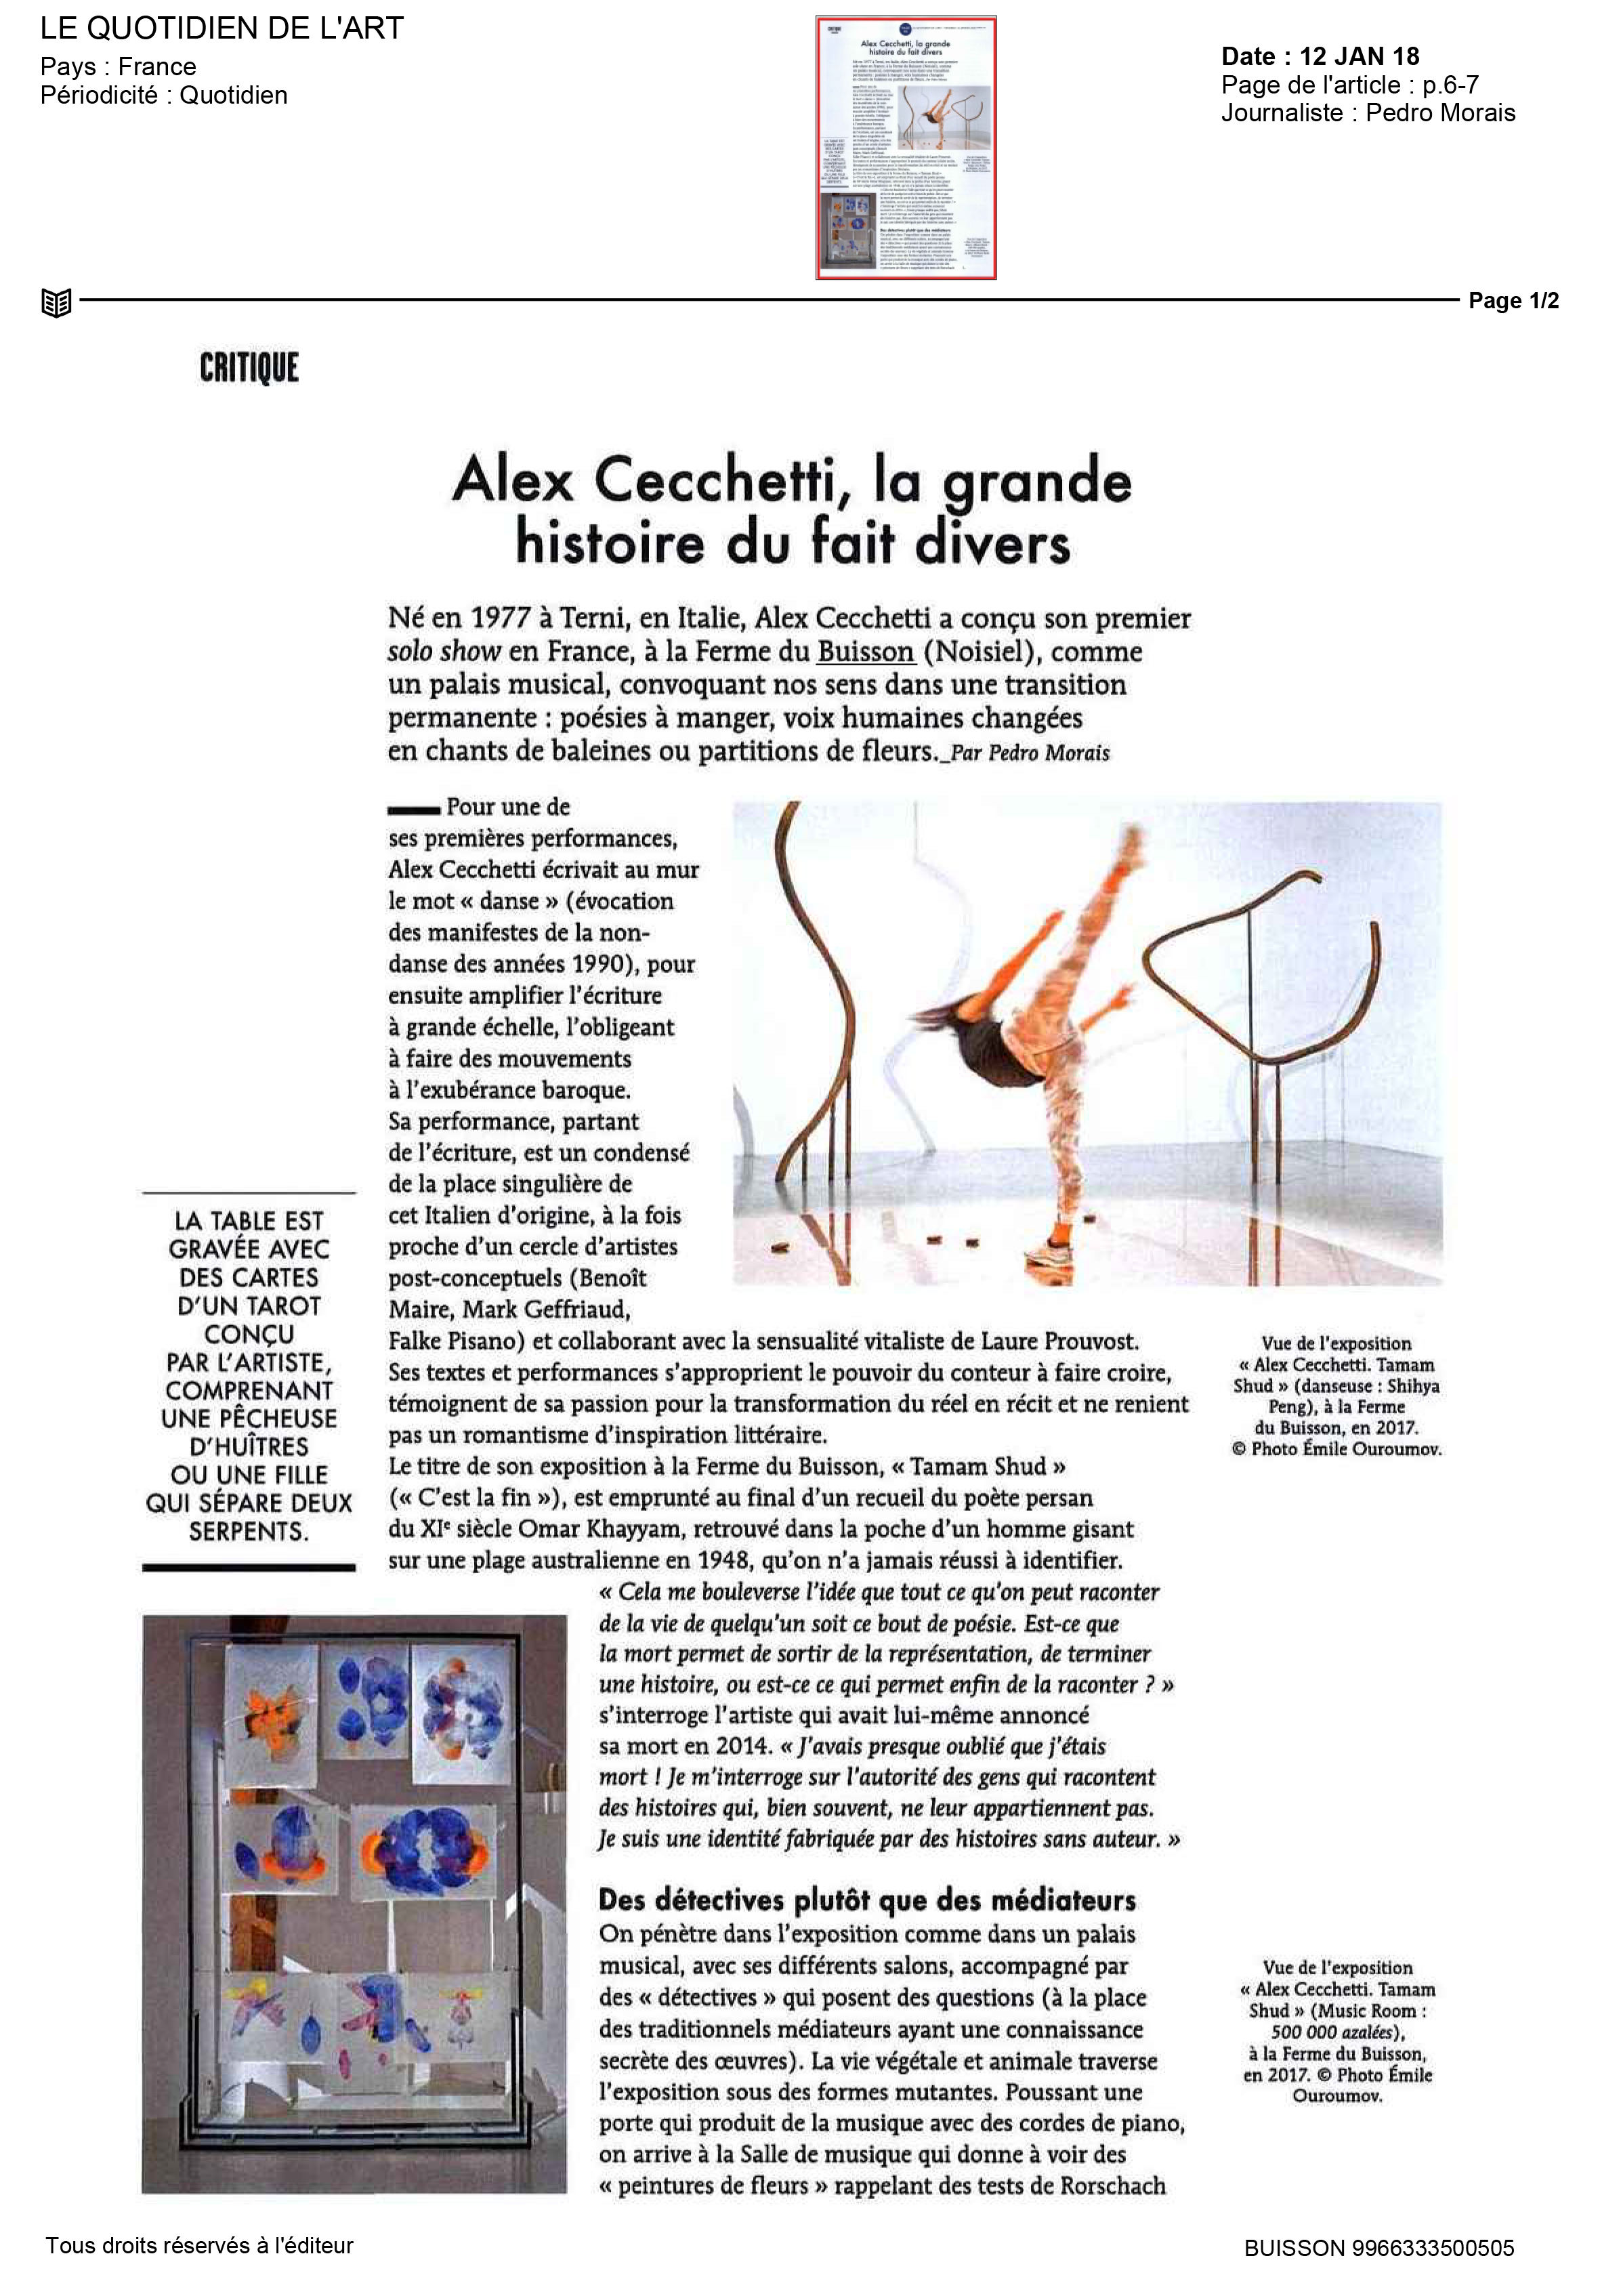 2018-01-12-LE QUOTIDIEN DE L'ART-12 JAN 18-10000000053336699-1.jpg